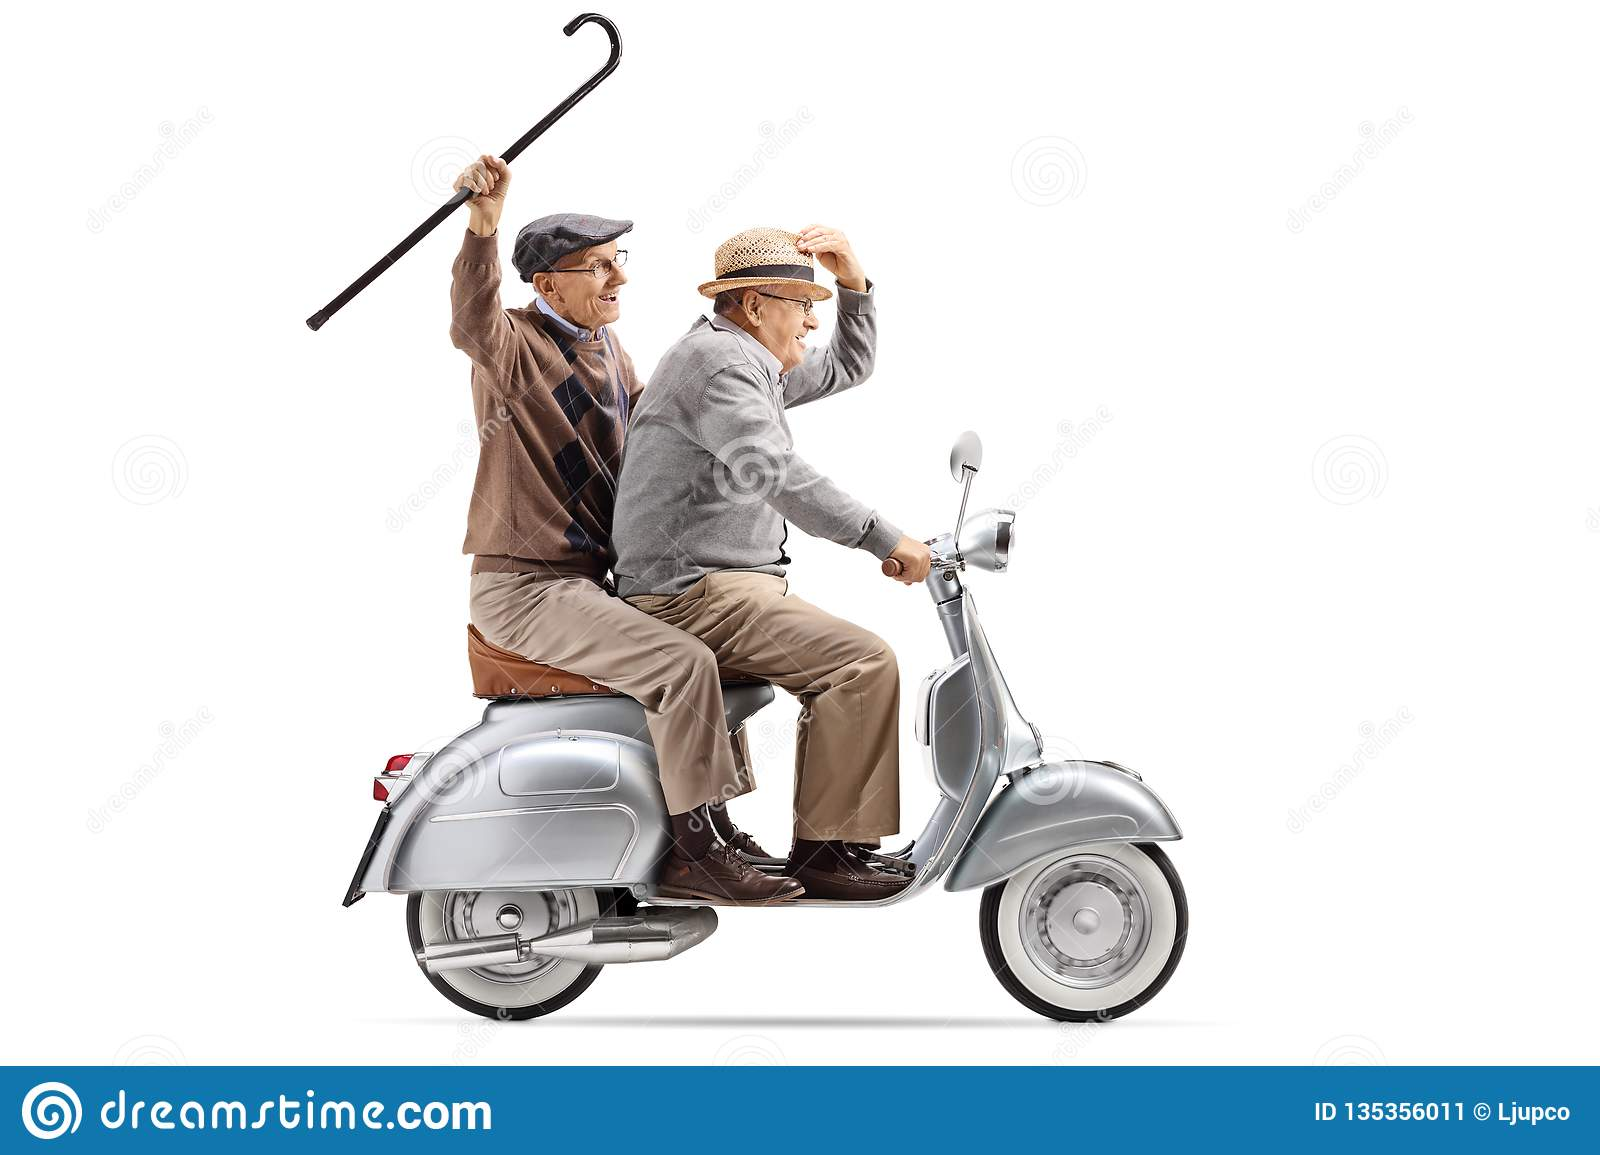 Two senior men riding a vintage scooter and waving with a cane